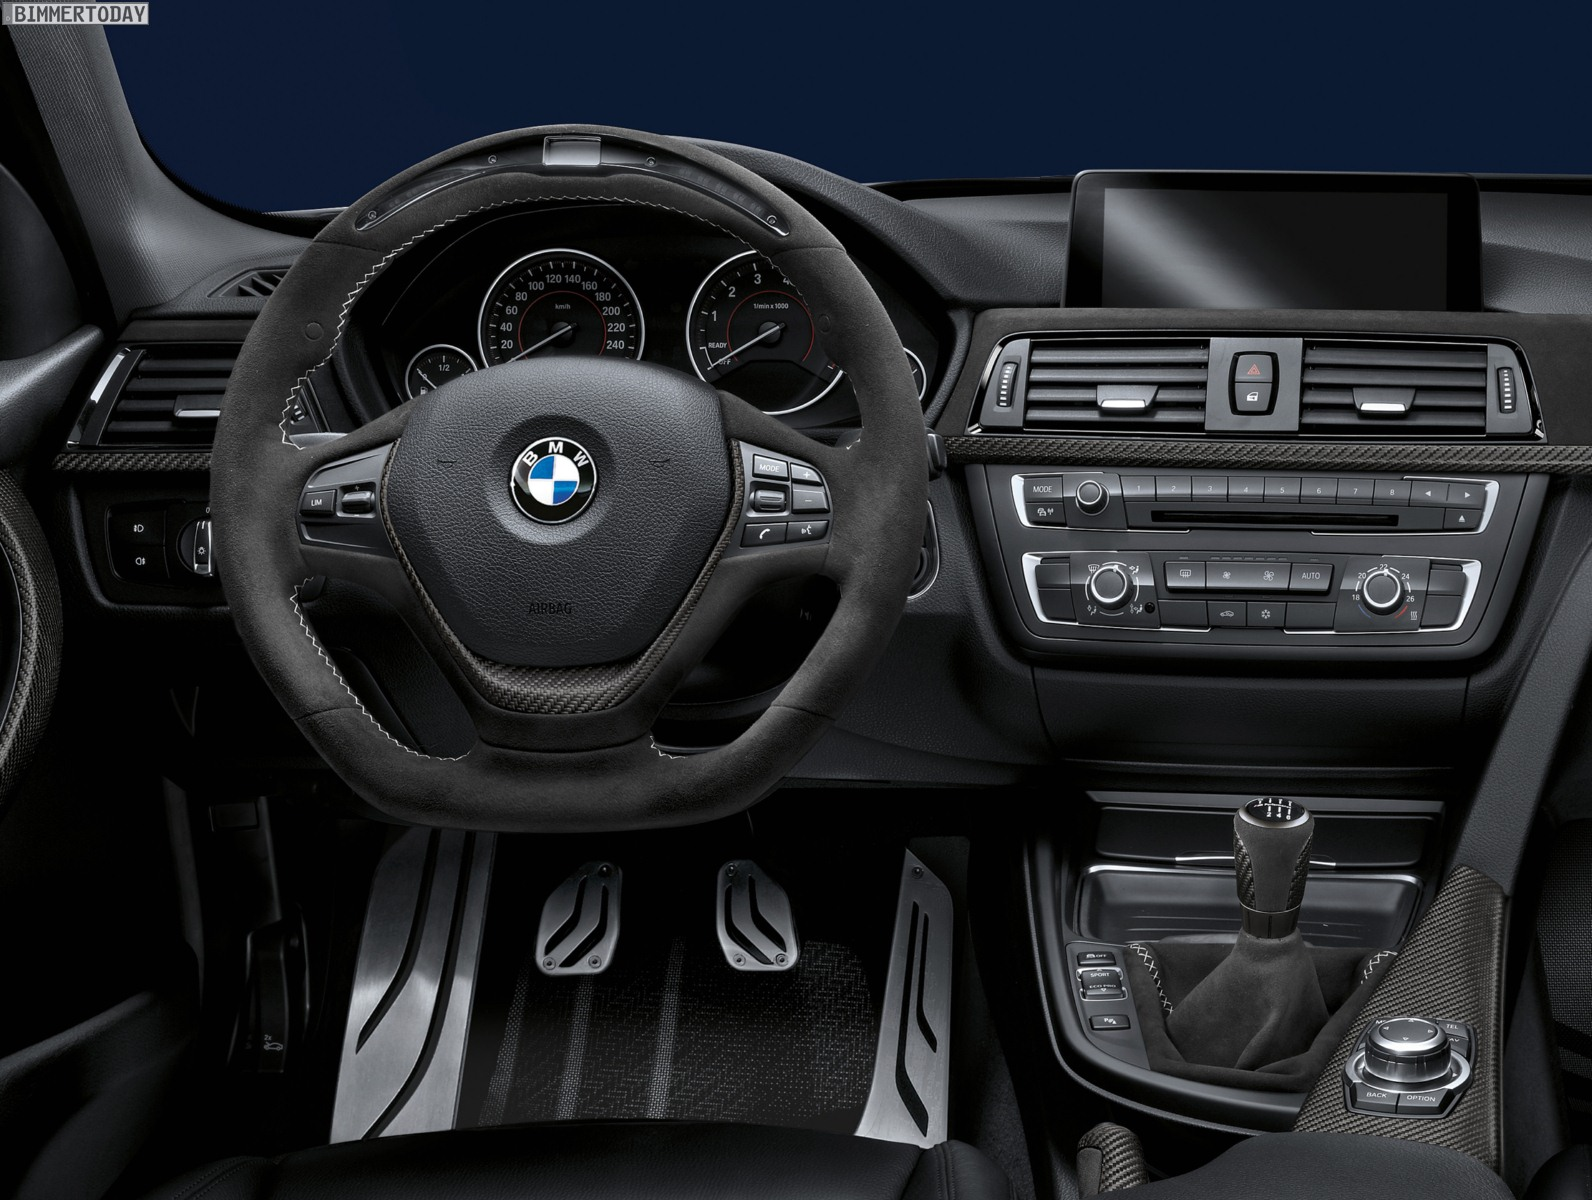 bmw m performance lenkrad alcantara mit race display im video. Black Bedroom Furniture Sets. Home Design Ideas